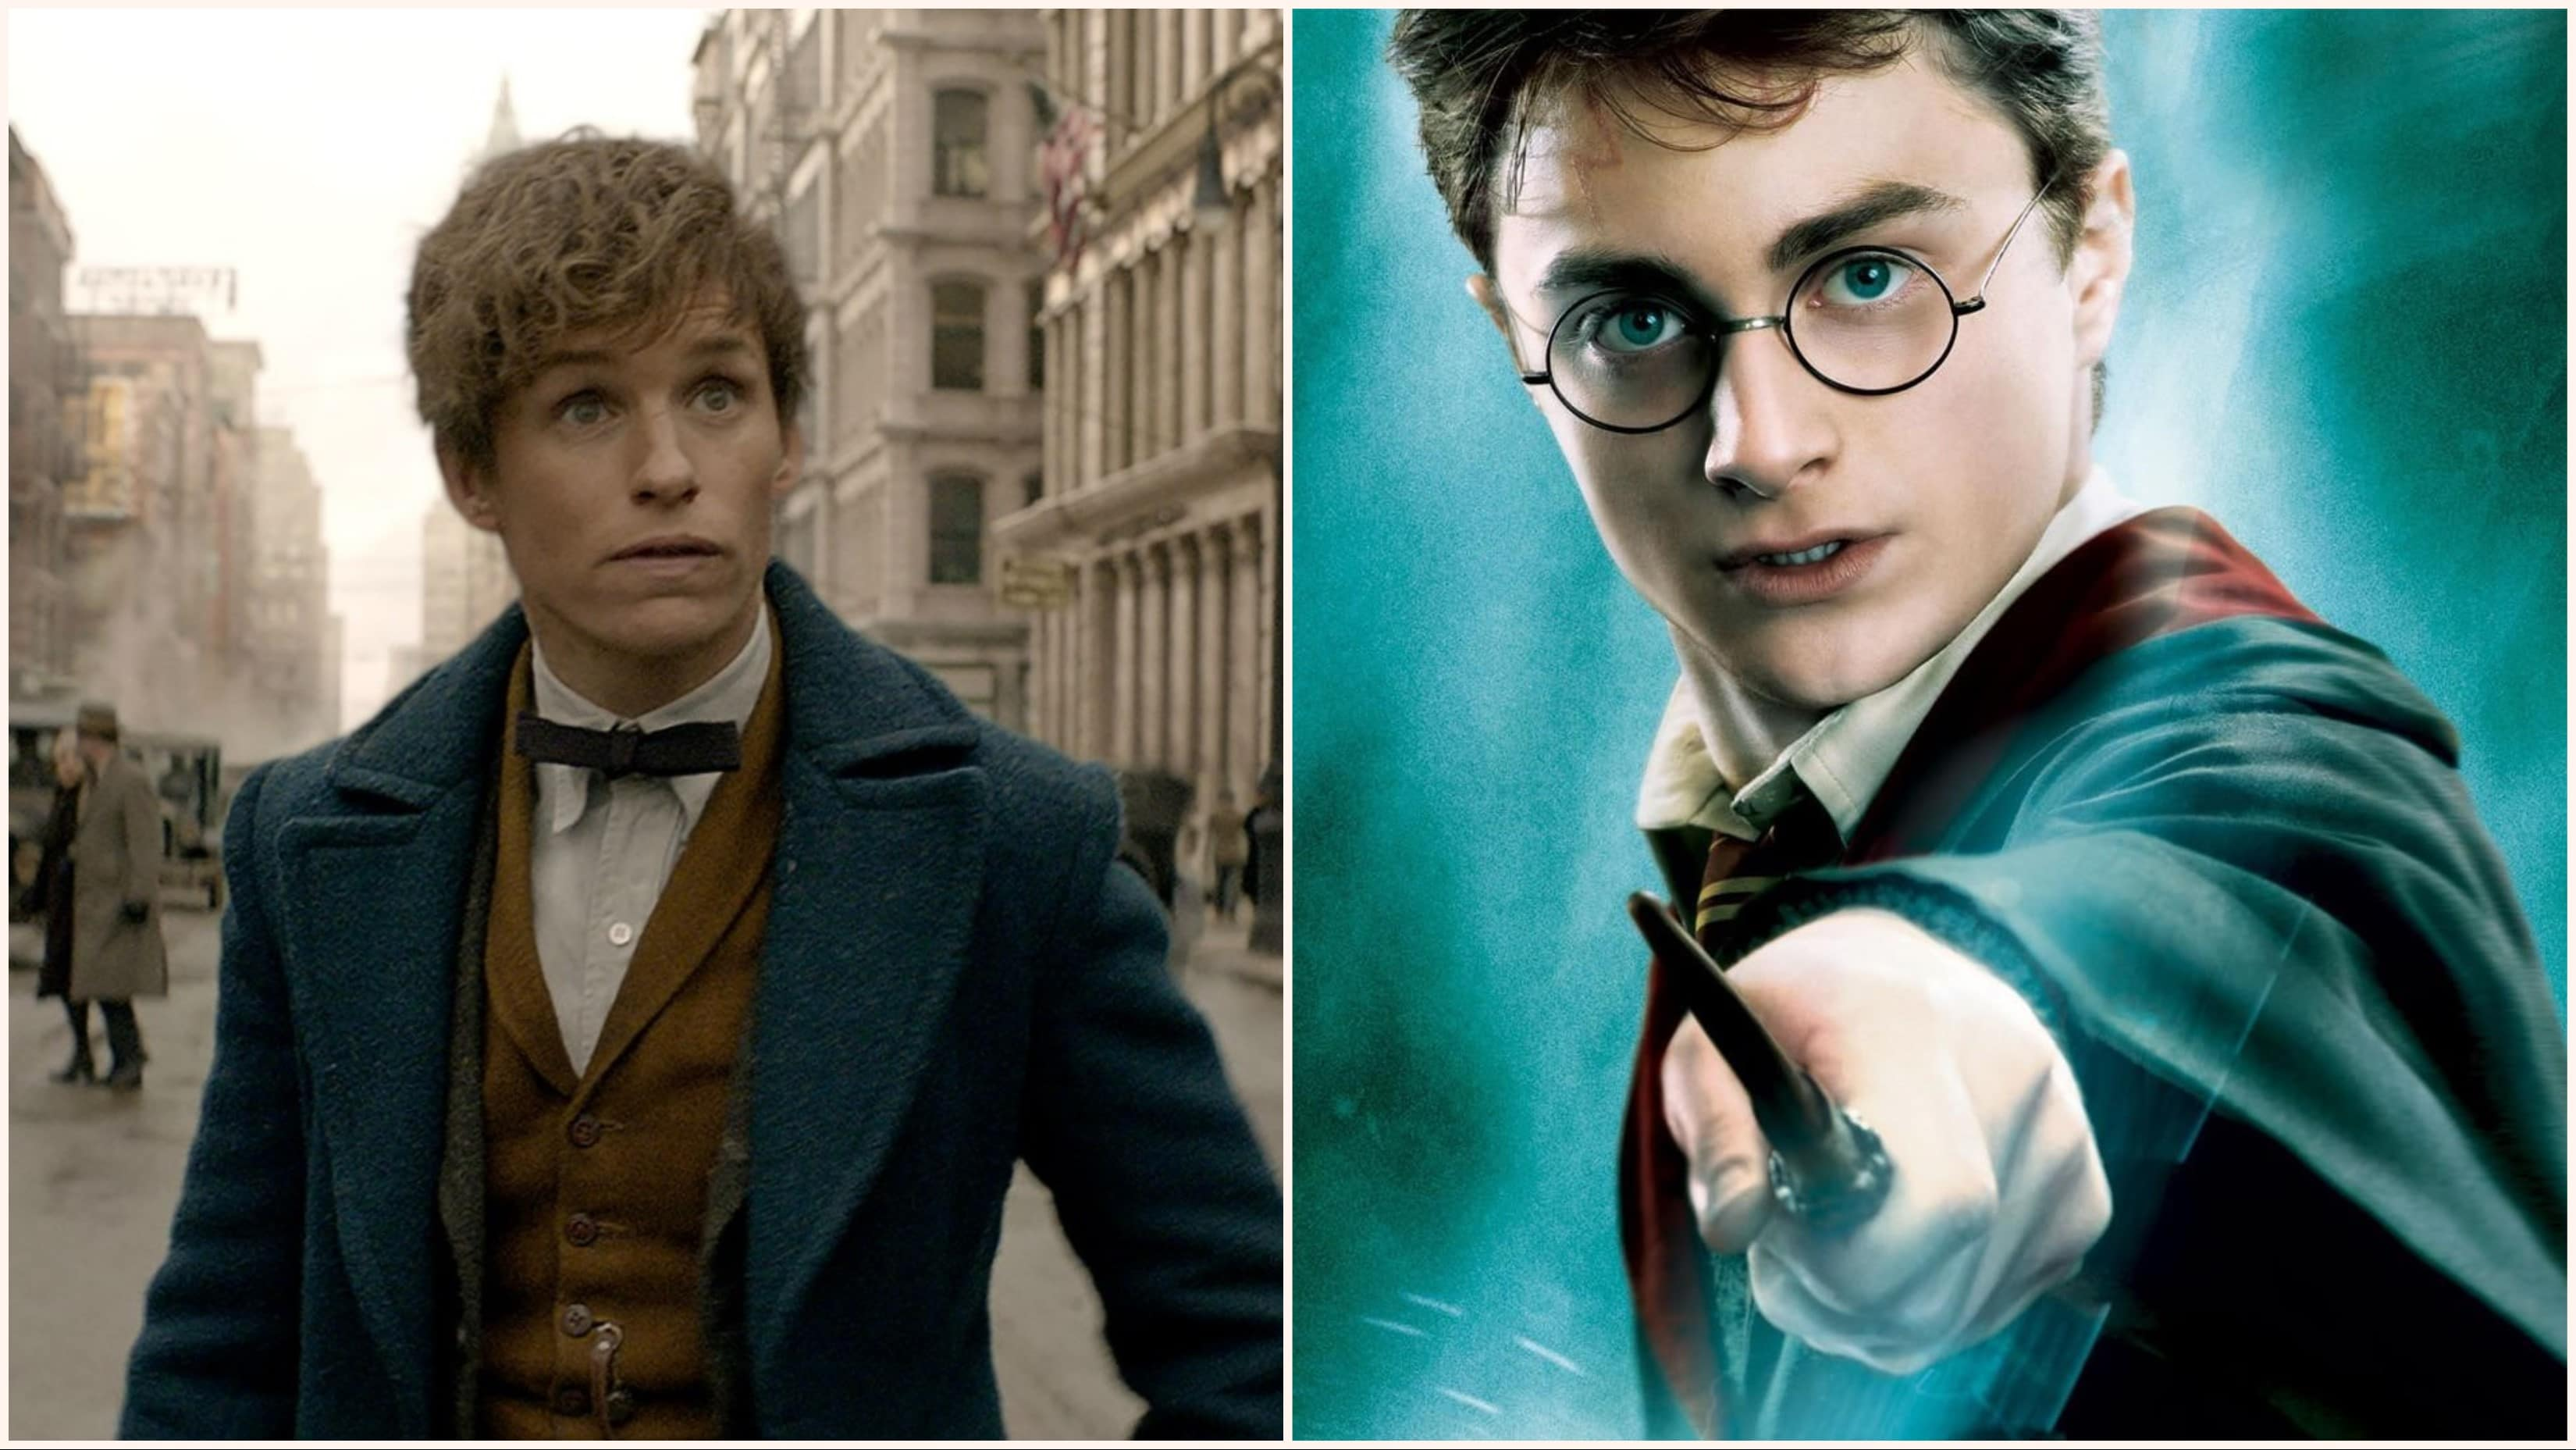 'Fantastic Beasts' Star Talks Major 'Harry Potter' Connection